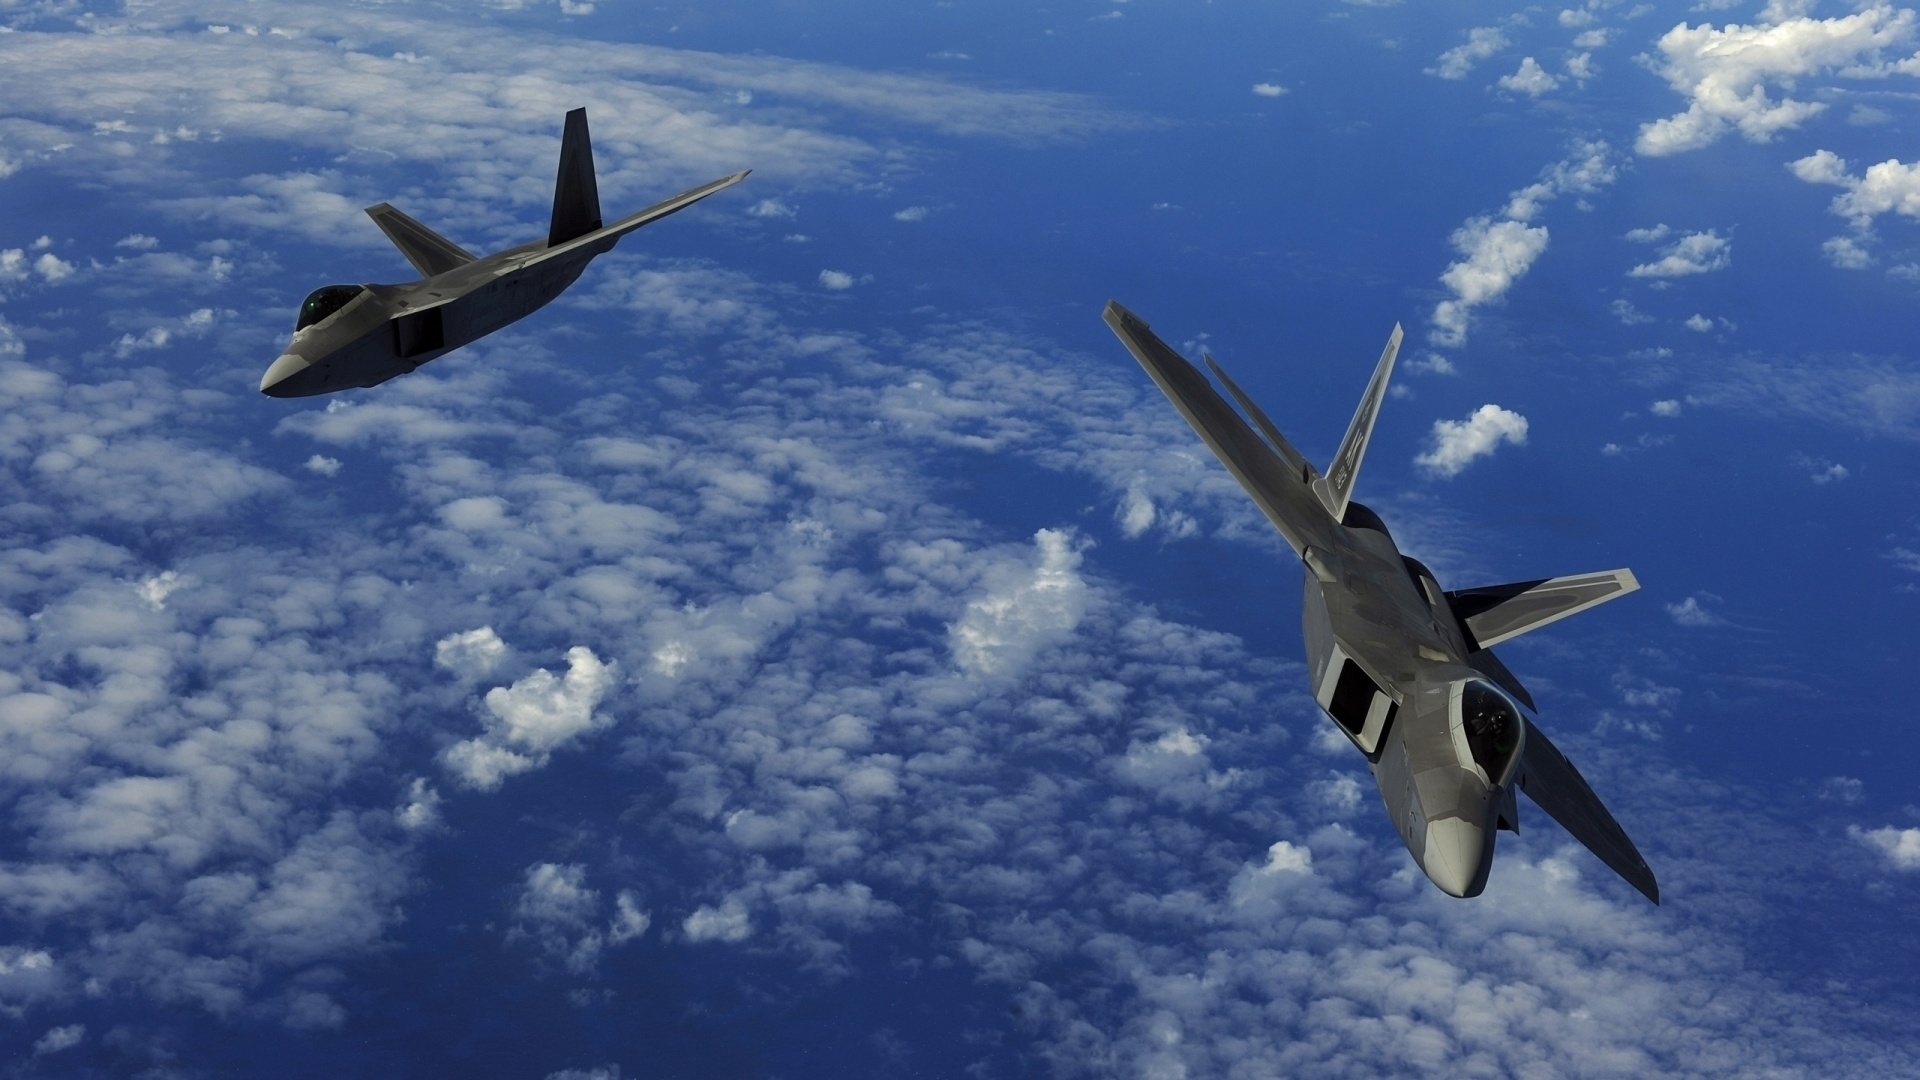 Two F 22 Raptor Aircraft Wallpapers   1920x1080   493944 1920x1080